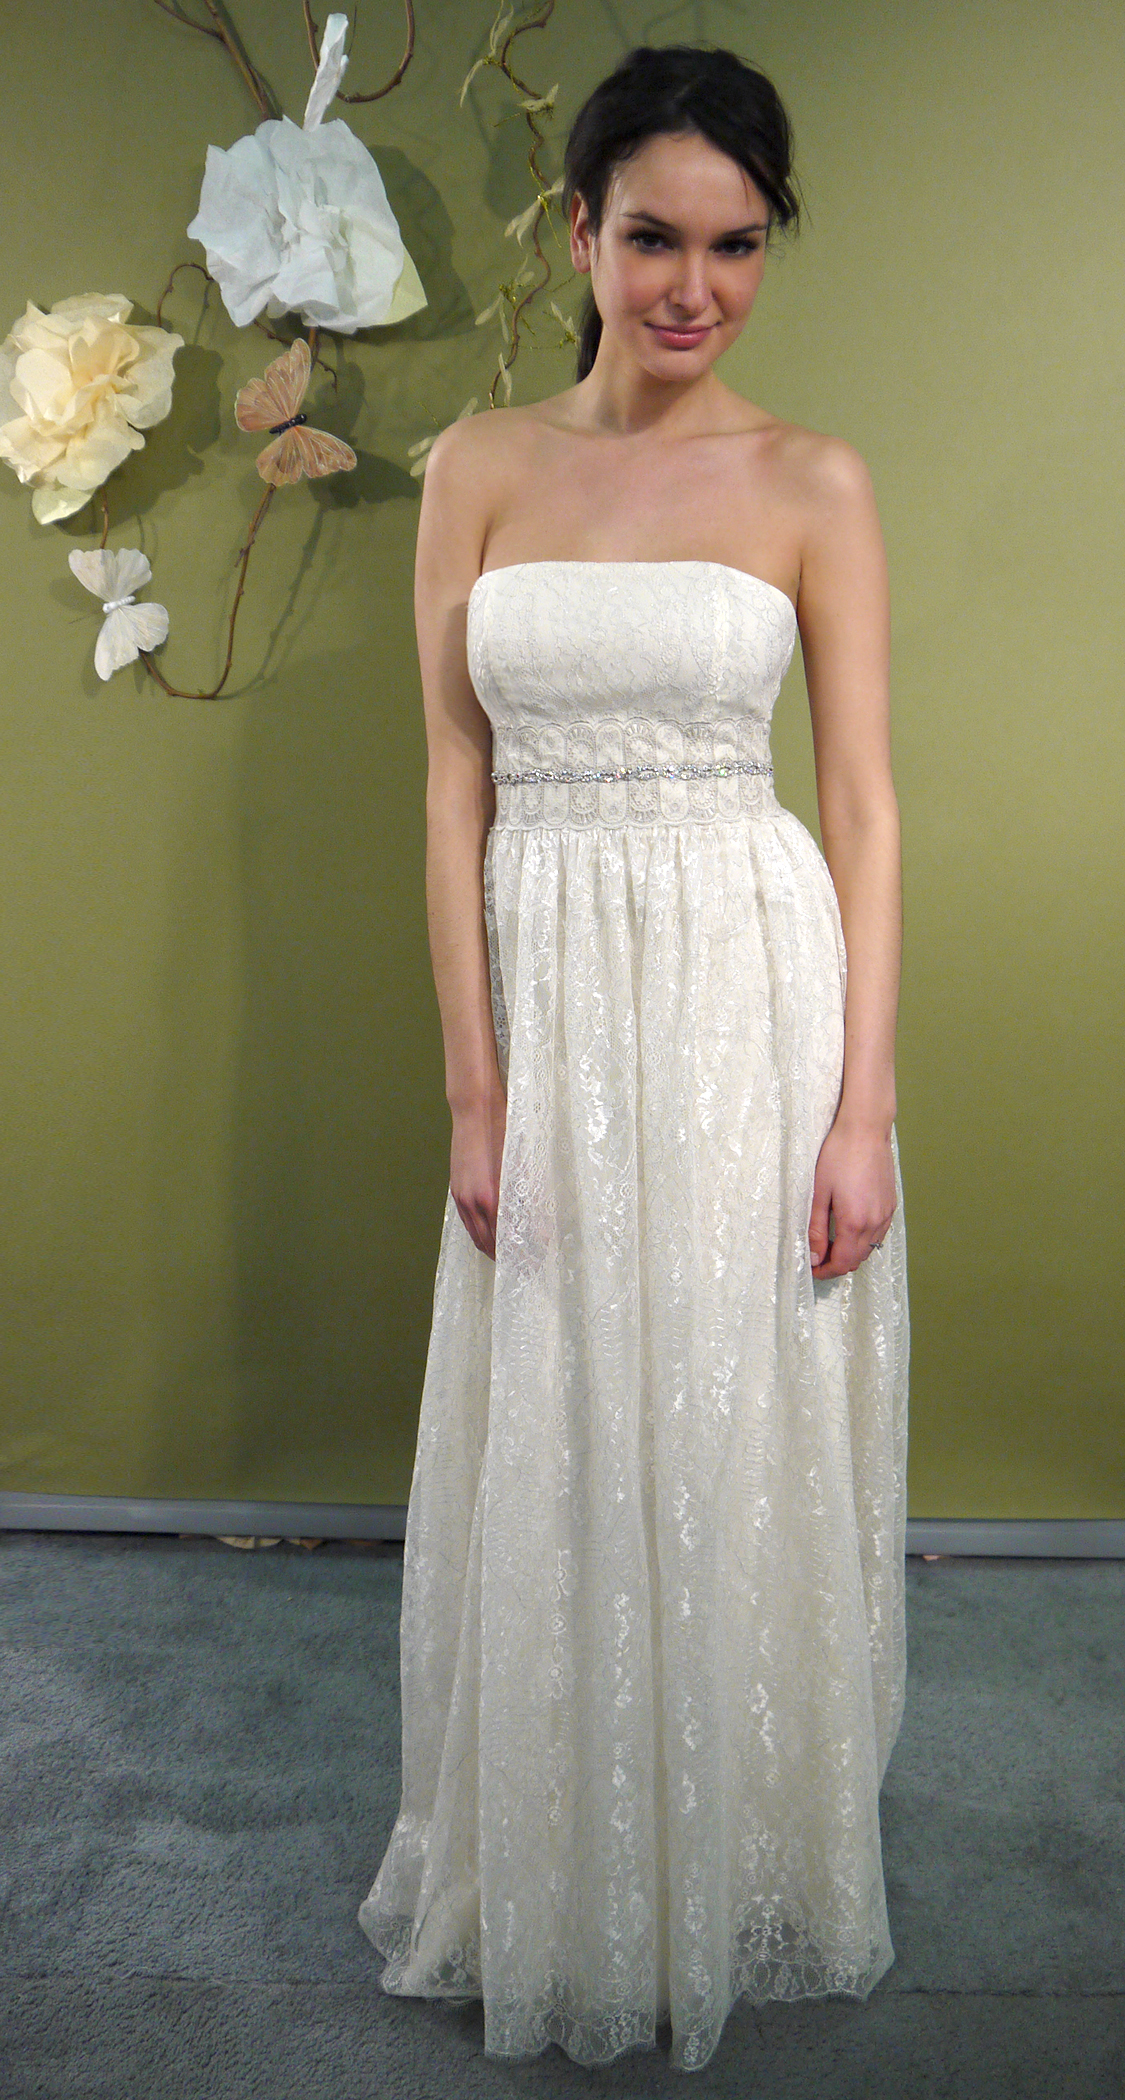 Ivory strapless column wedding dress with beaded bridal